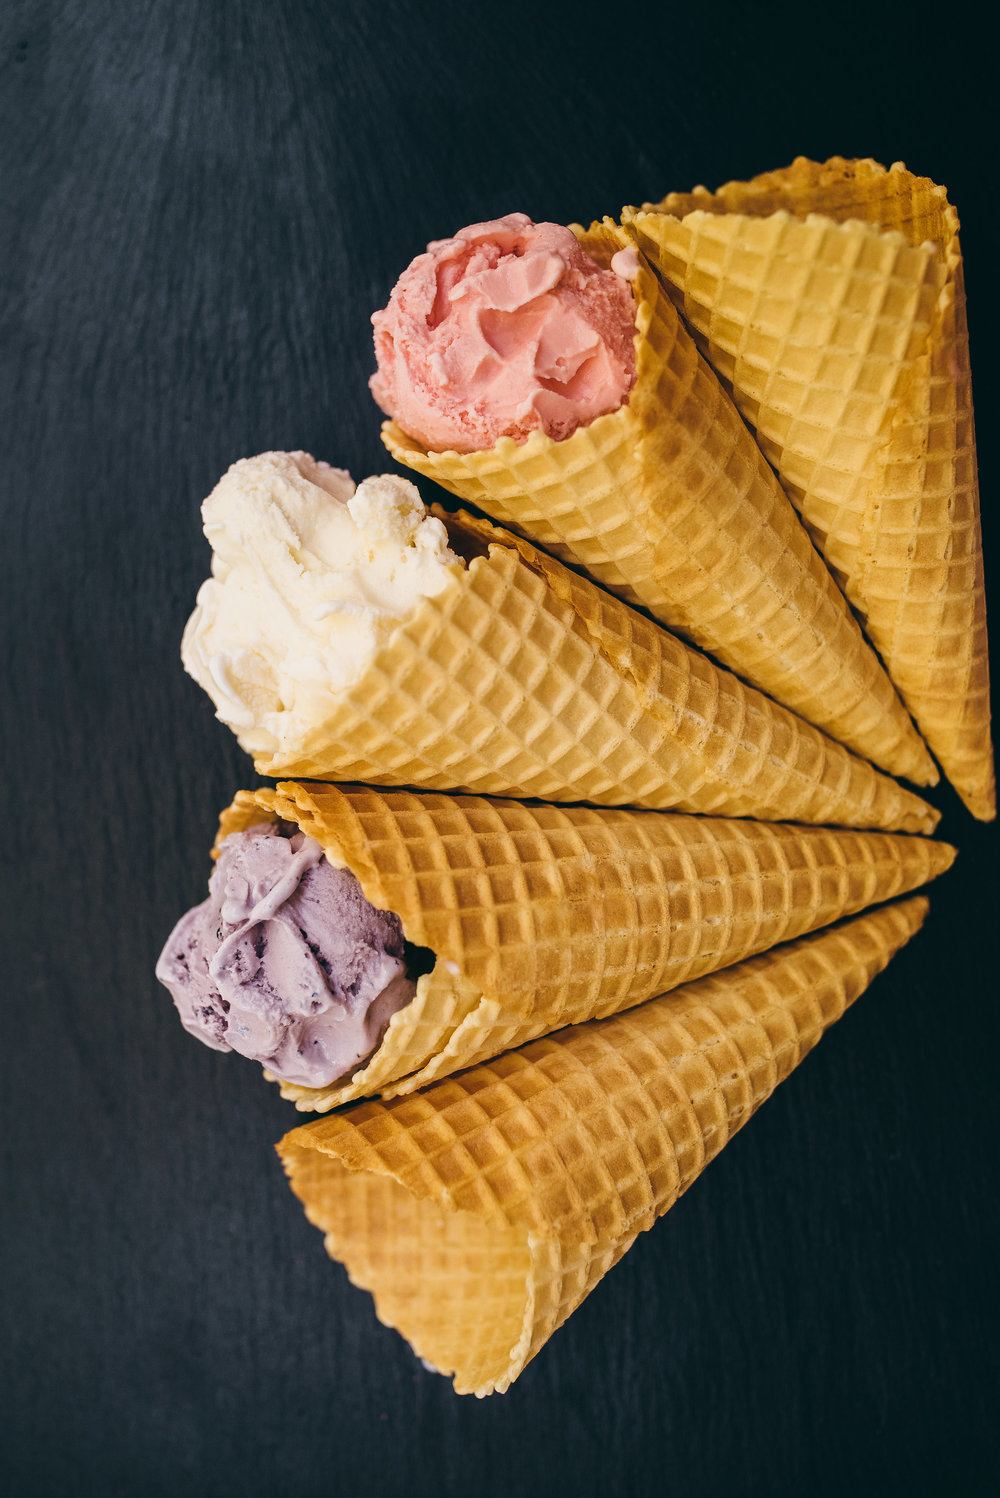 raleigh product photographer - raleigh ice cream photographer